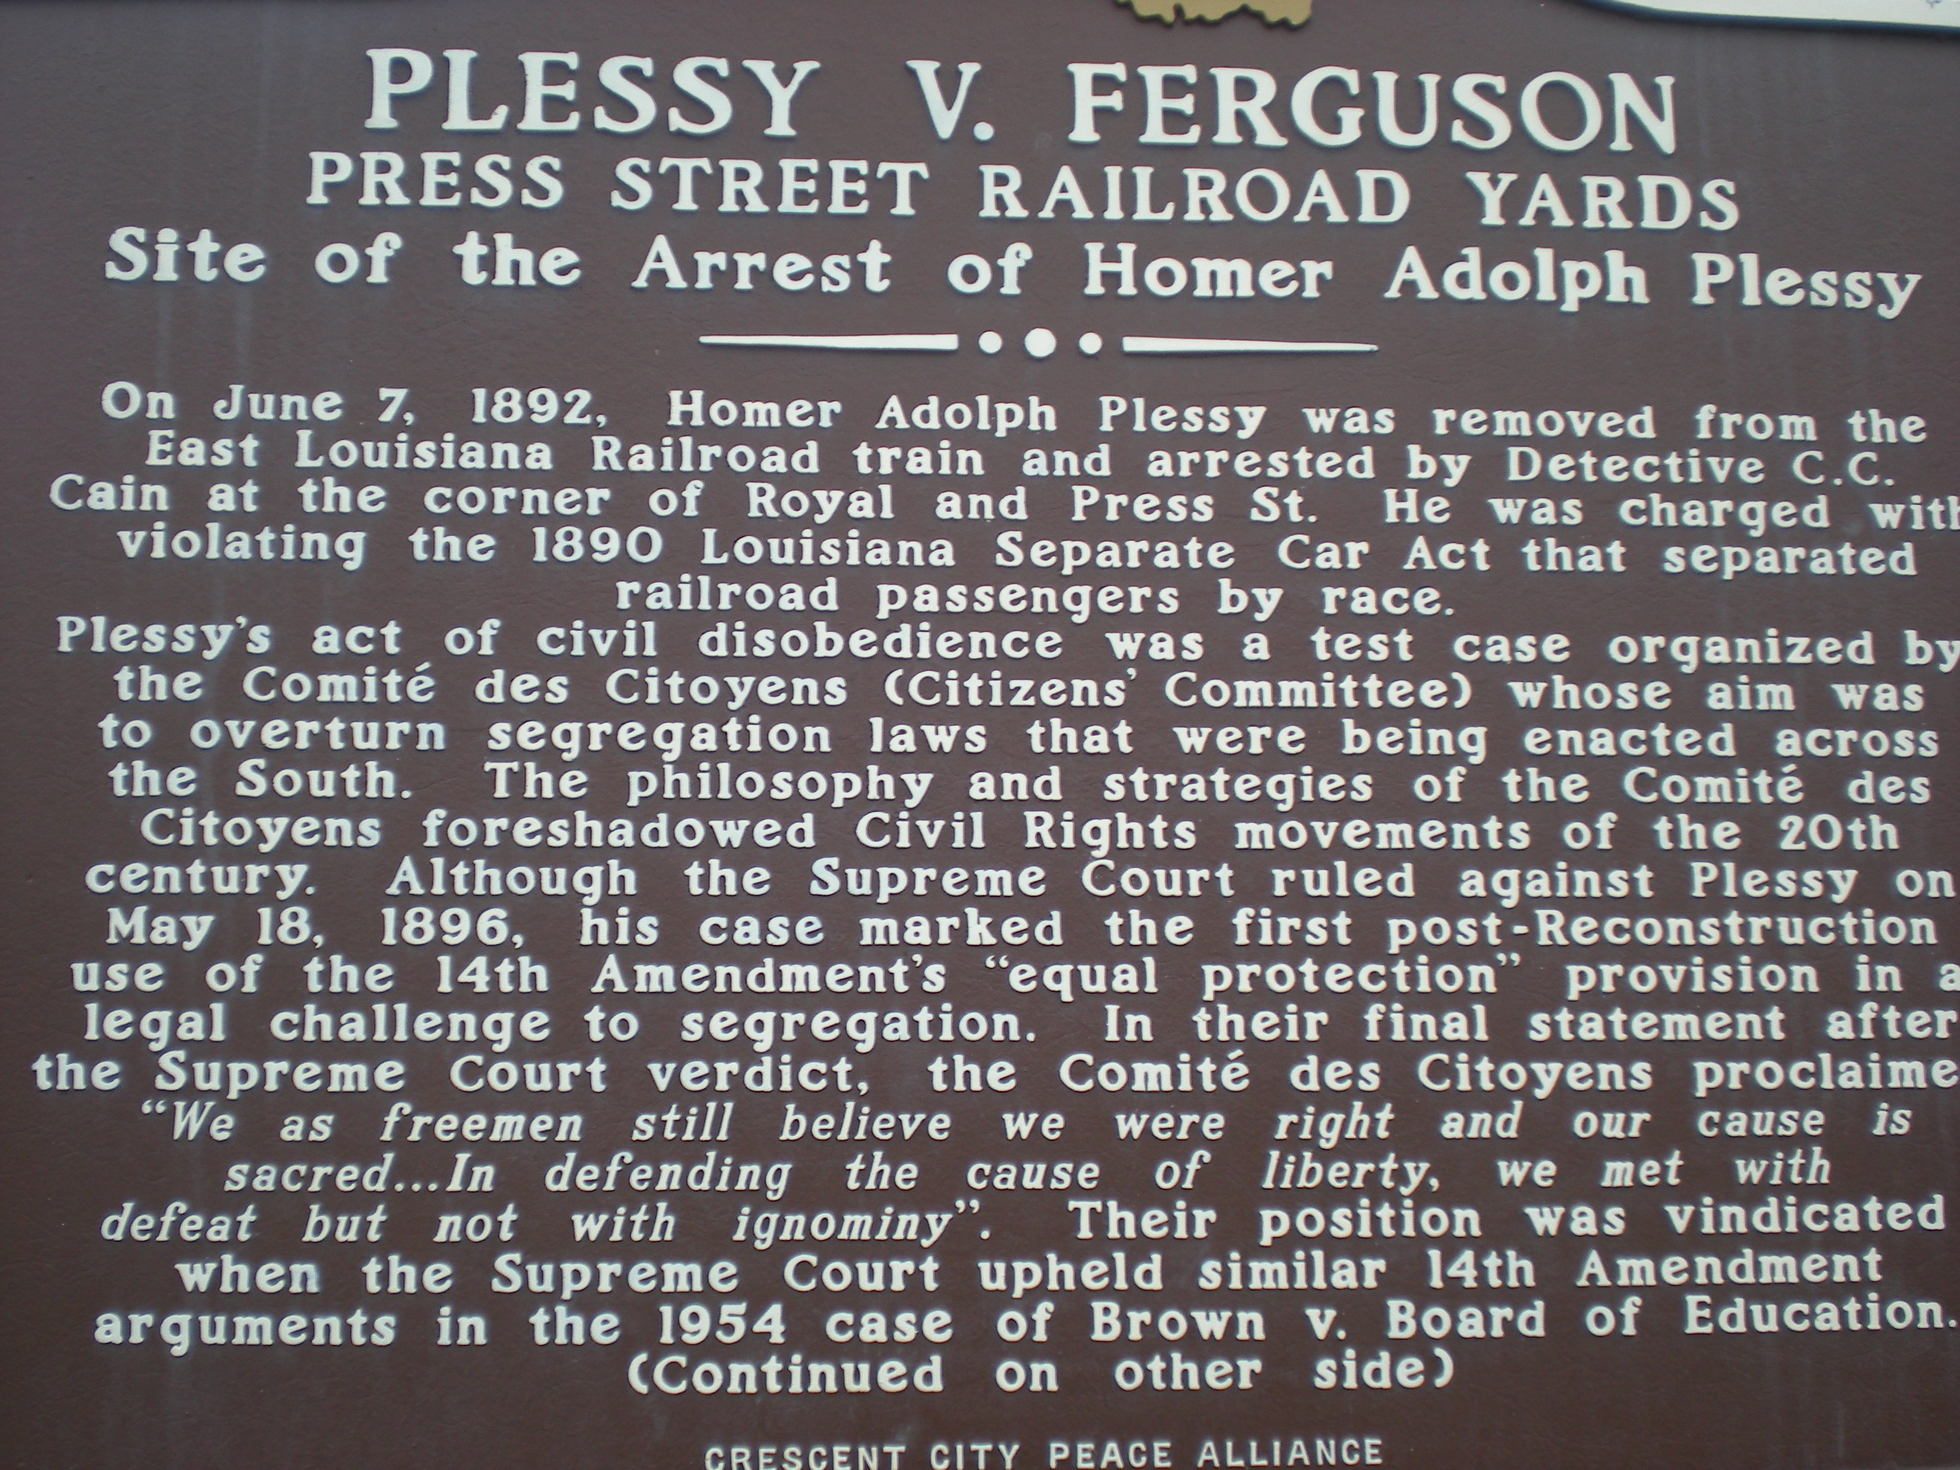 the impact of the 1896 supreme court verdict in the racial segregation case plessy versus ferguson